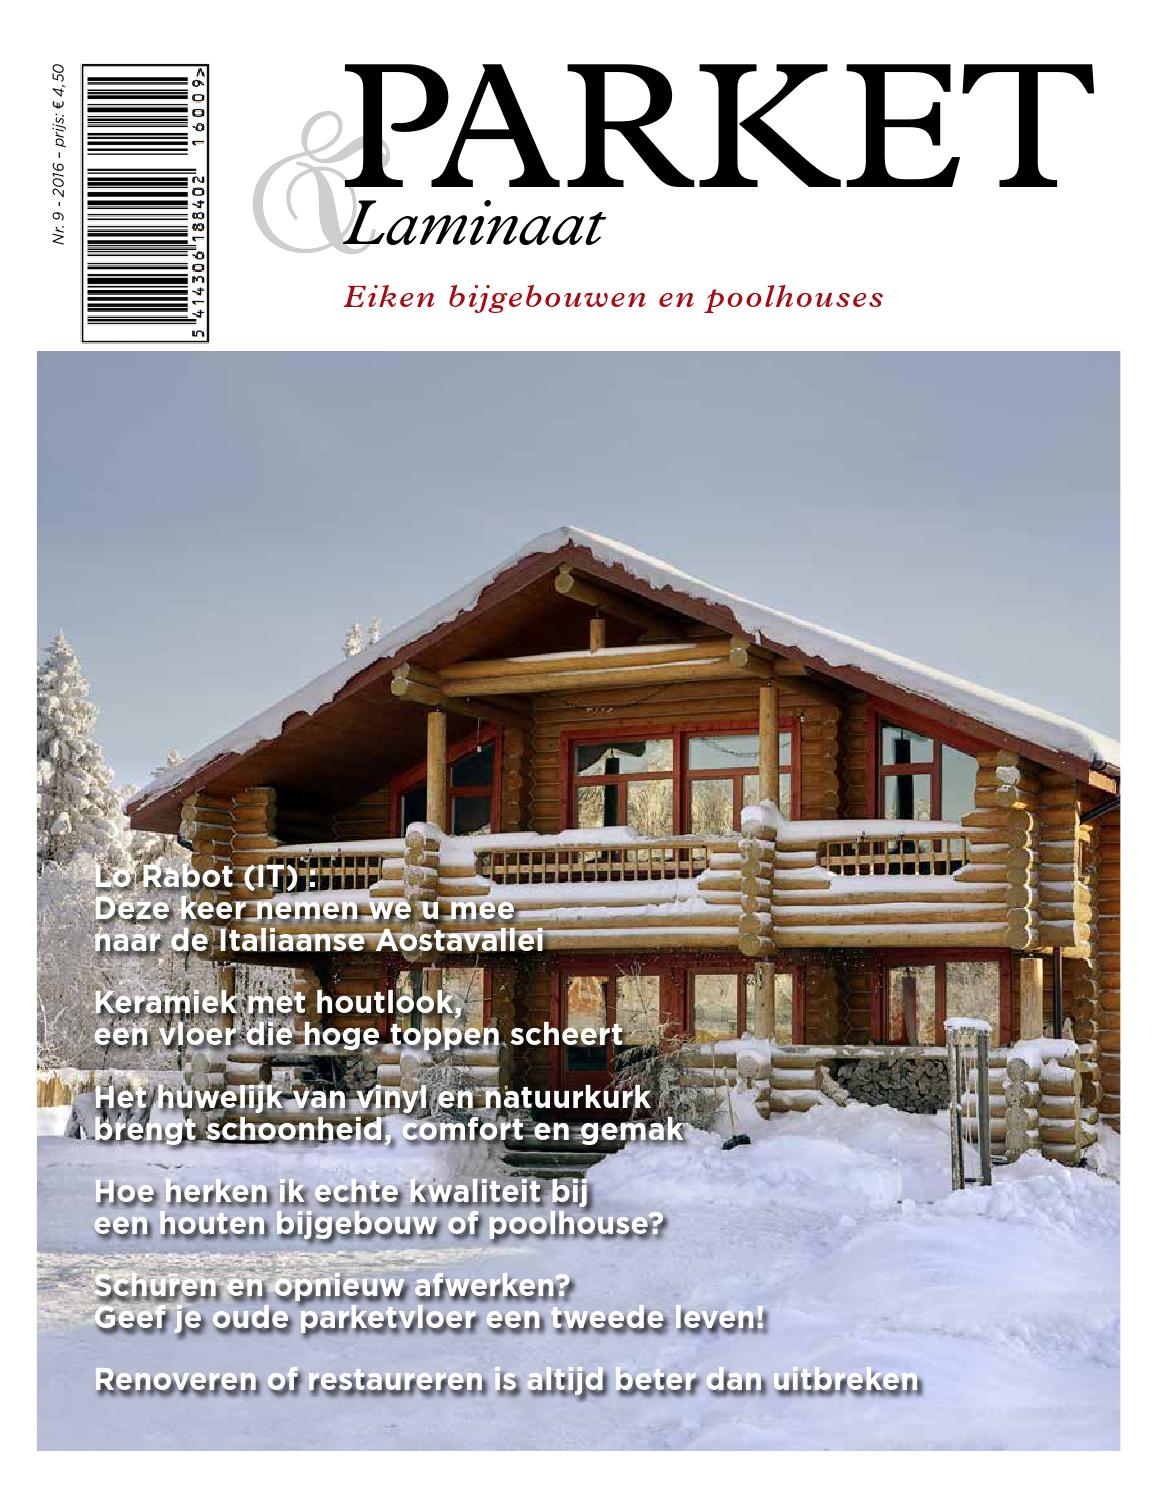 P&l nr 9 by media pact nv / ffi bvba   issuu